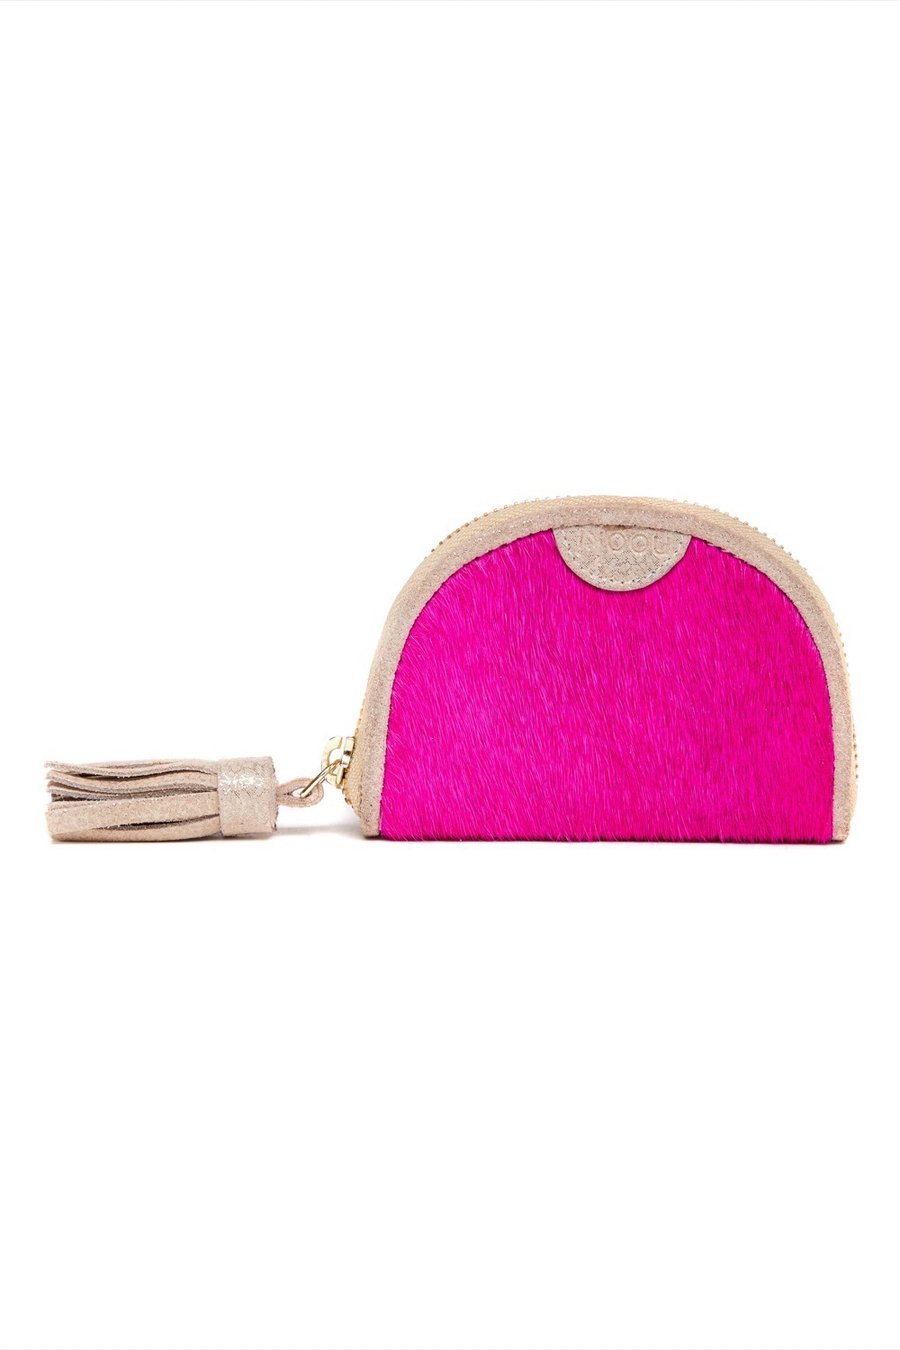 Lowie Coin Purse